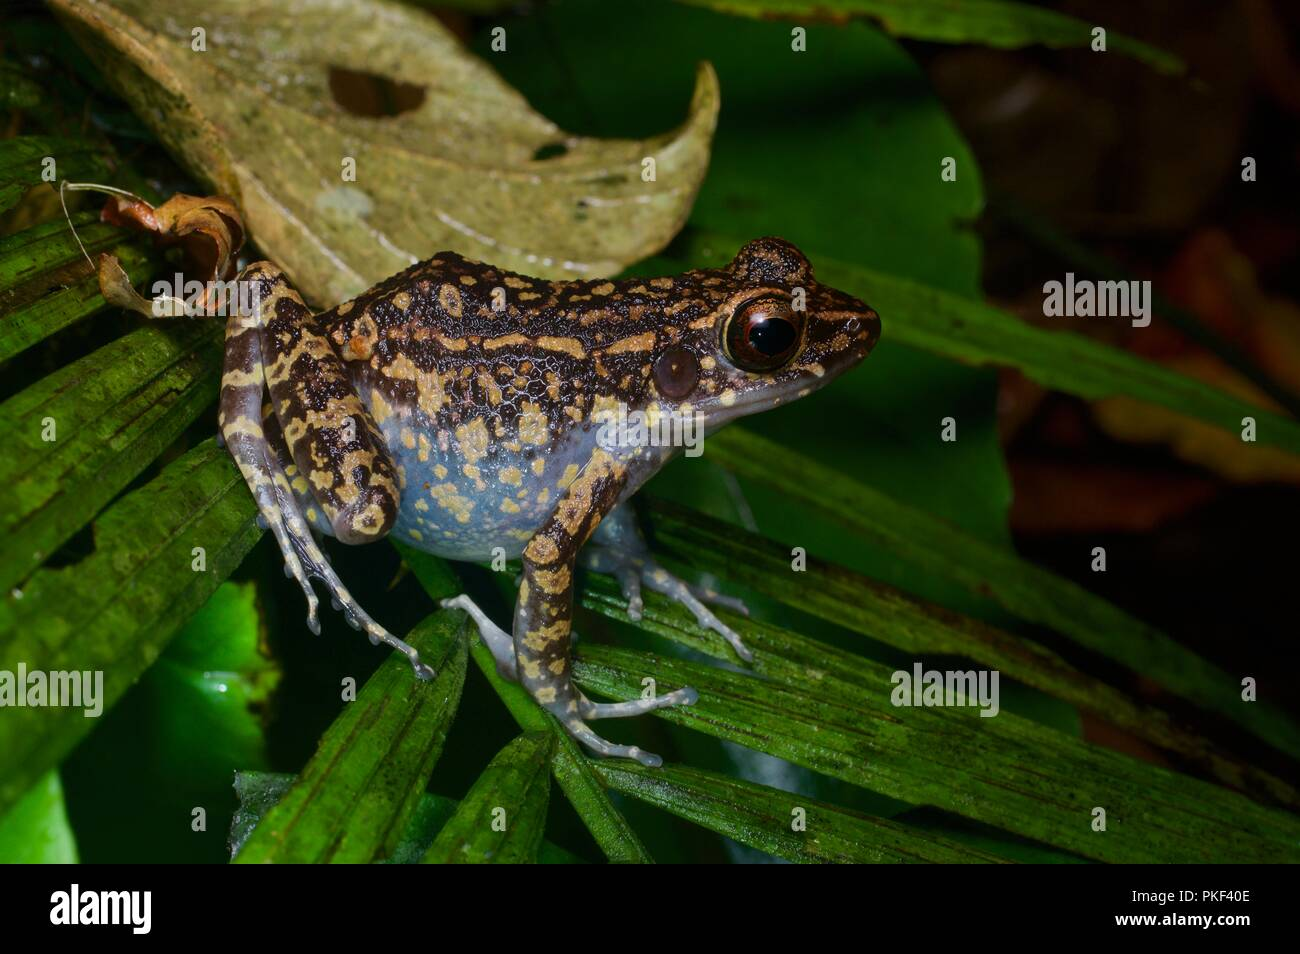 A Spotted Stream Frog (Pulchrana picturata) on a palm frond in Ranau, Sabah, East Malaysia, Borneo - Stock Image